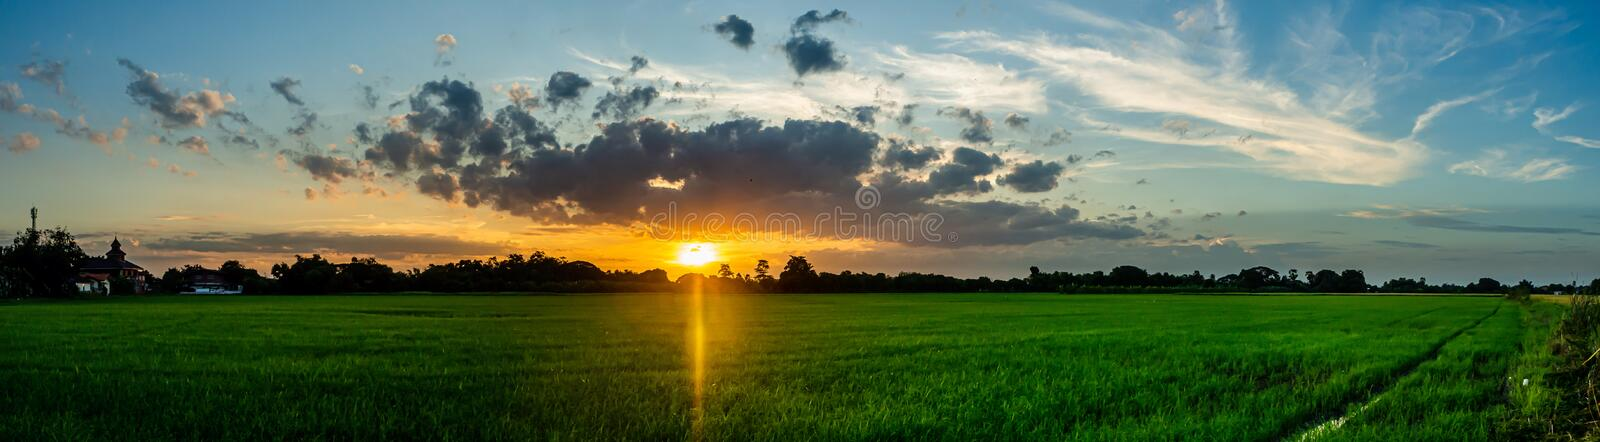 Landscape of suset with Green fields royalty free stock images